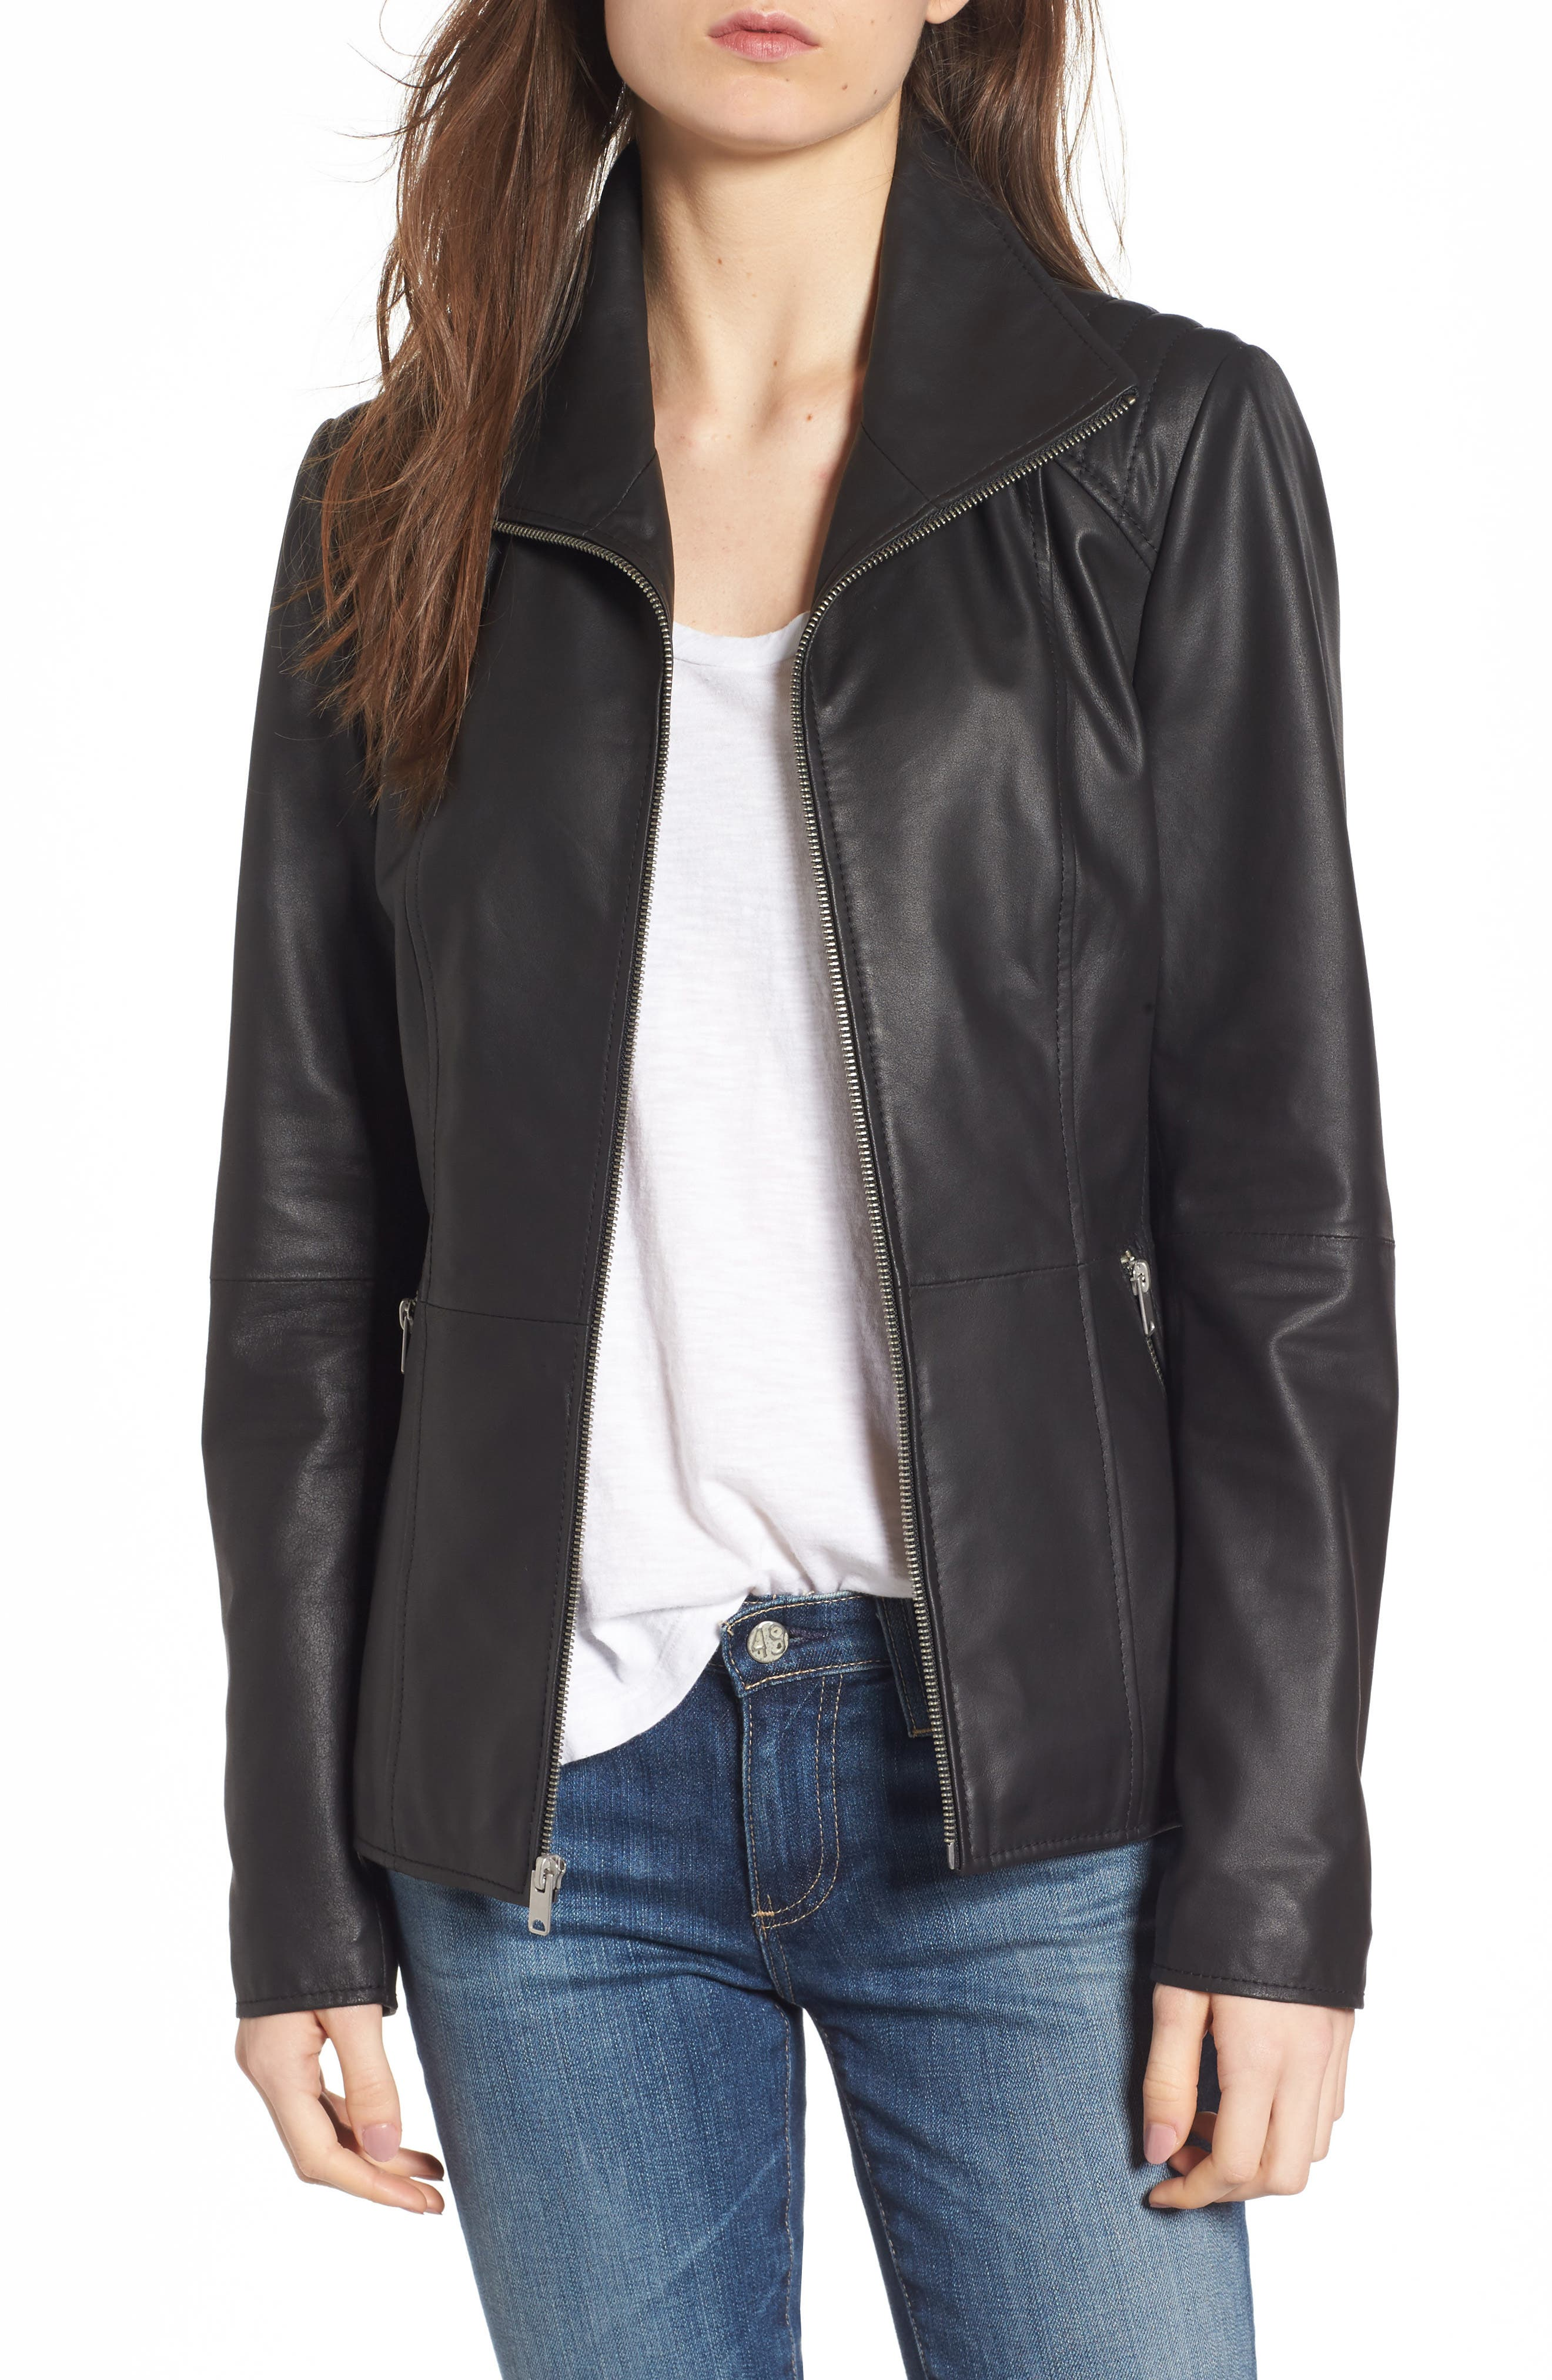 Andrew Marc Fabian Feather Leather Jacket